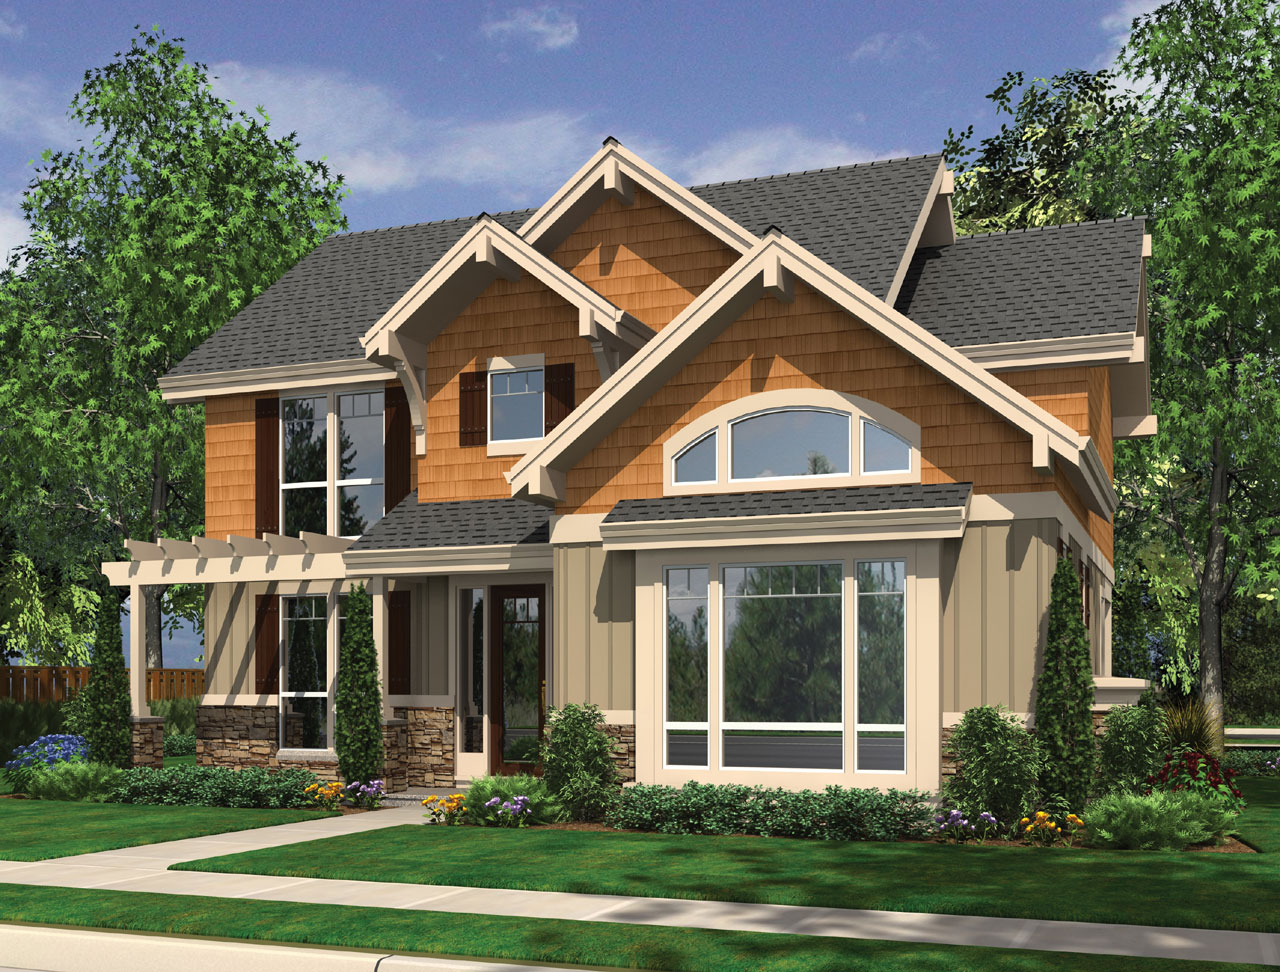 Craftsman Style House Plans Plan: 74-661